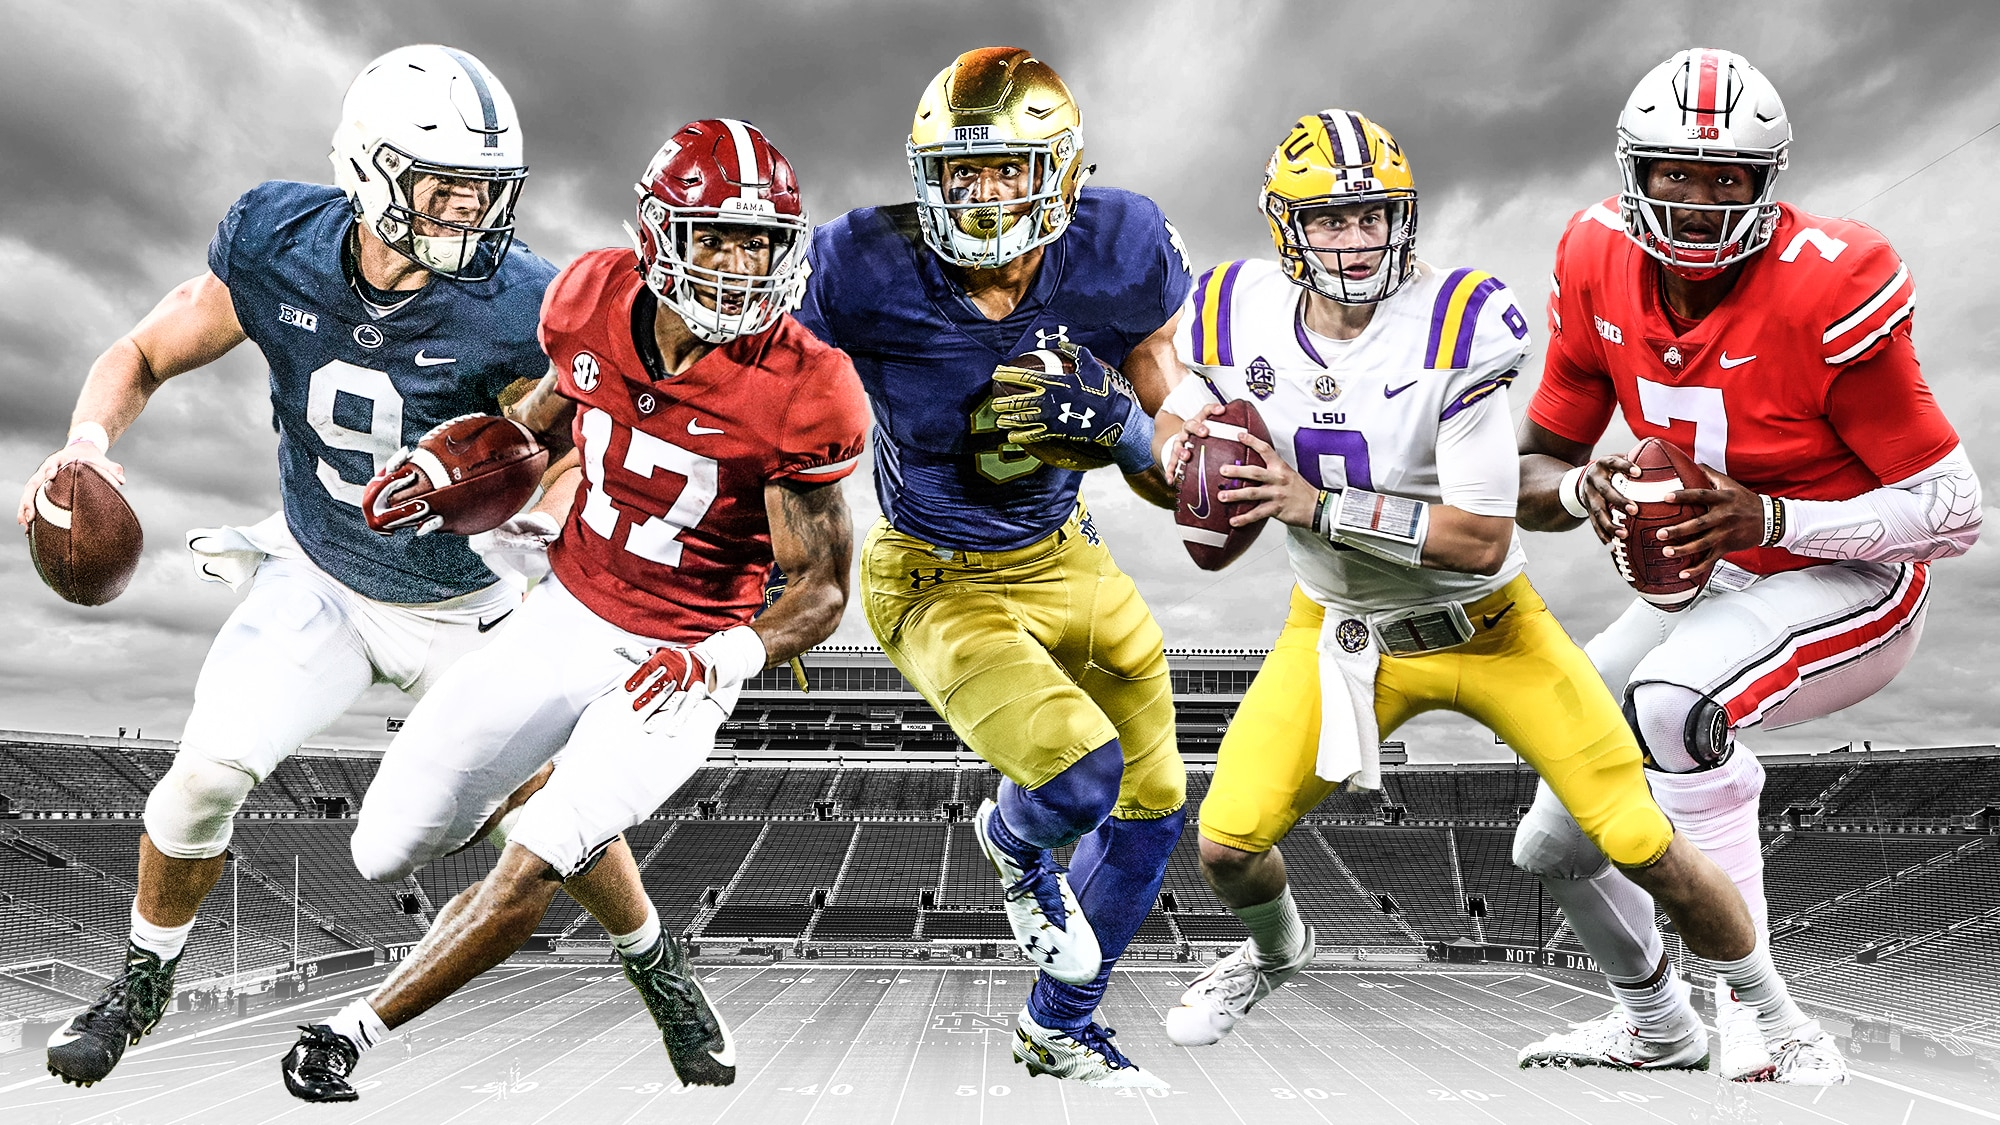 118abcaed NCAA Football Re-Alignment, Relegation, 16-Team Playoffs and More ...